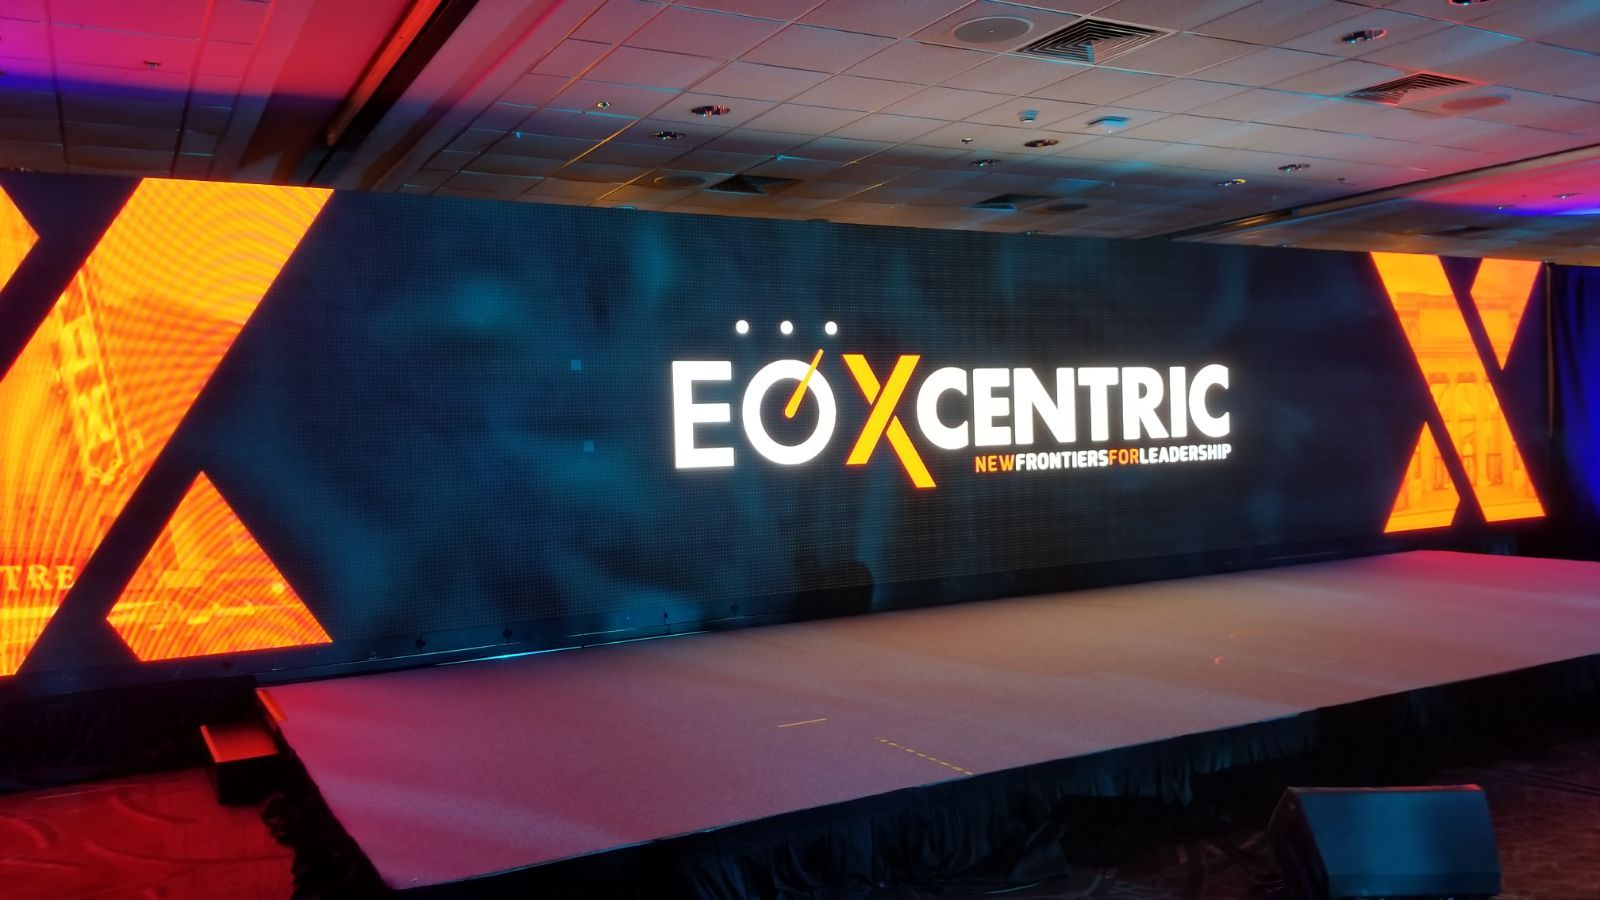 Large LED Video Wall Display at a St. Louis Conference